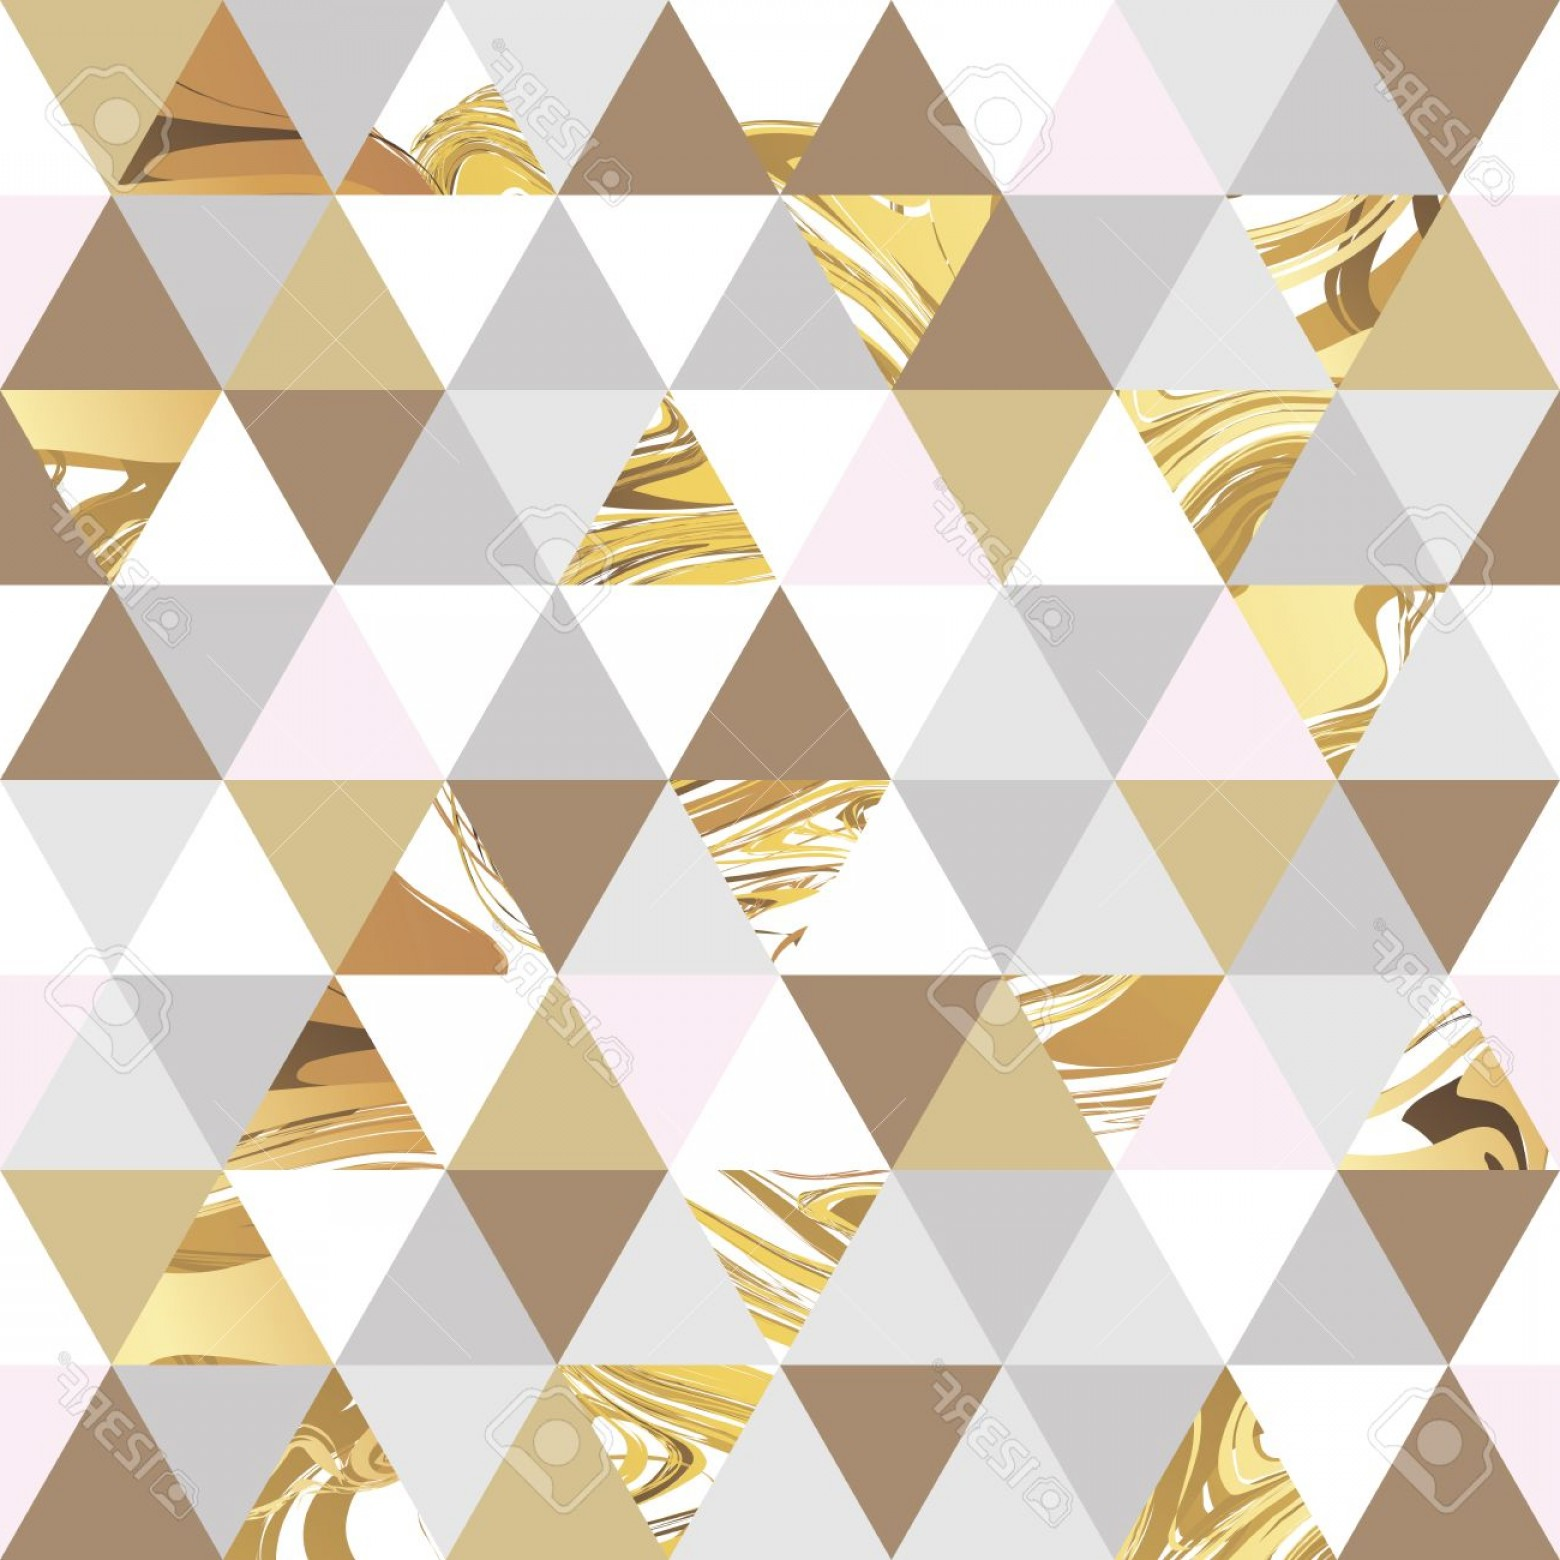 Marble With Gold Background Vector: Photostock Vector Geometric Marble Seamless Marble Gold Pattern Background Color Geometric Background For Poster Marke